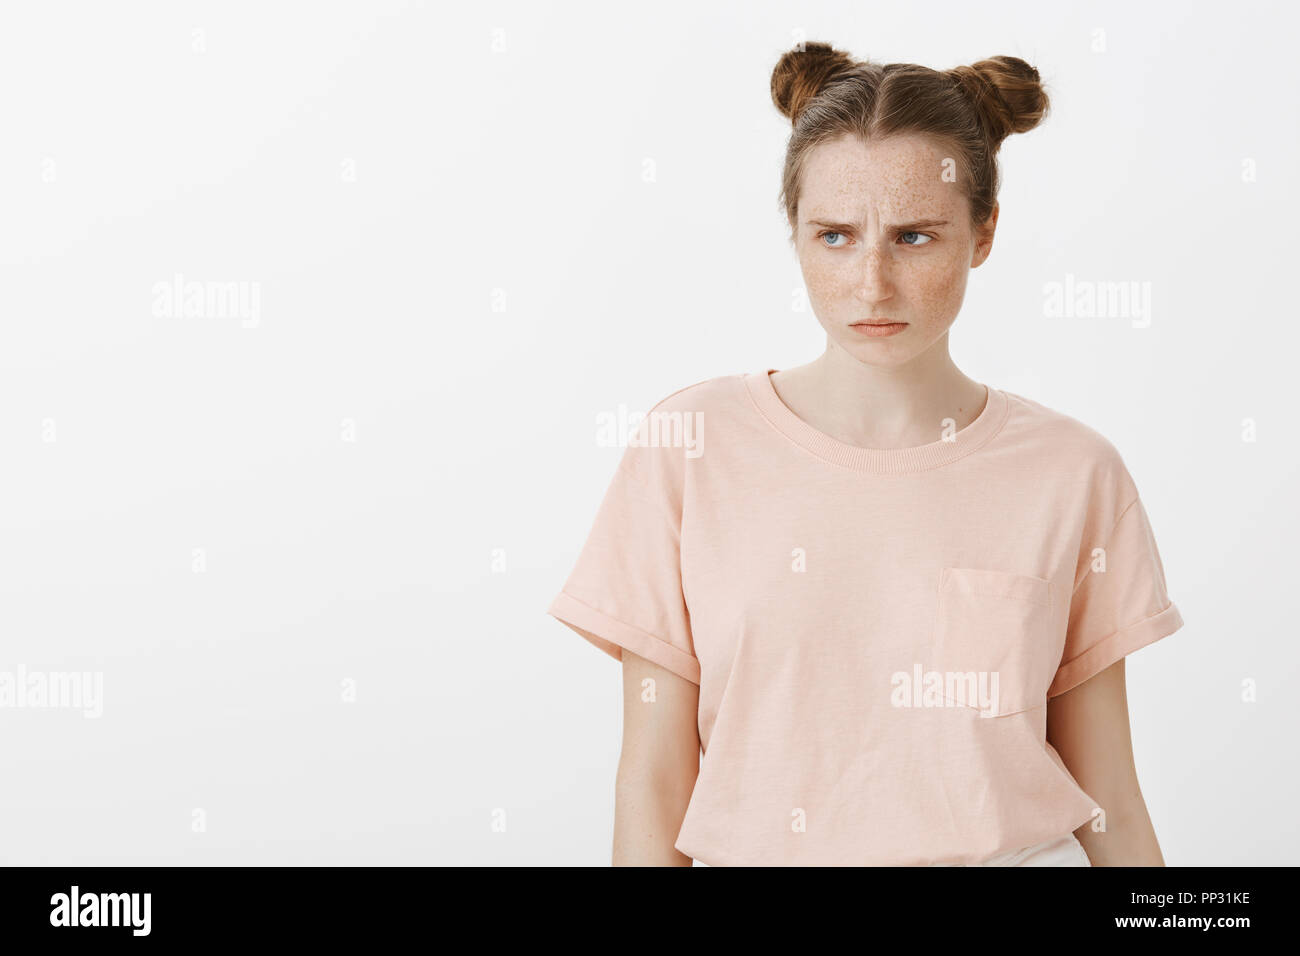 Girl feeling jealous and upset, wanting same toy as friend have. Portrait of offended gloomy woman in pink t-shirt, sulking and frowning while gazing left with regret and dislike over gray background - Stock Image